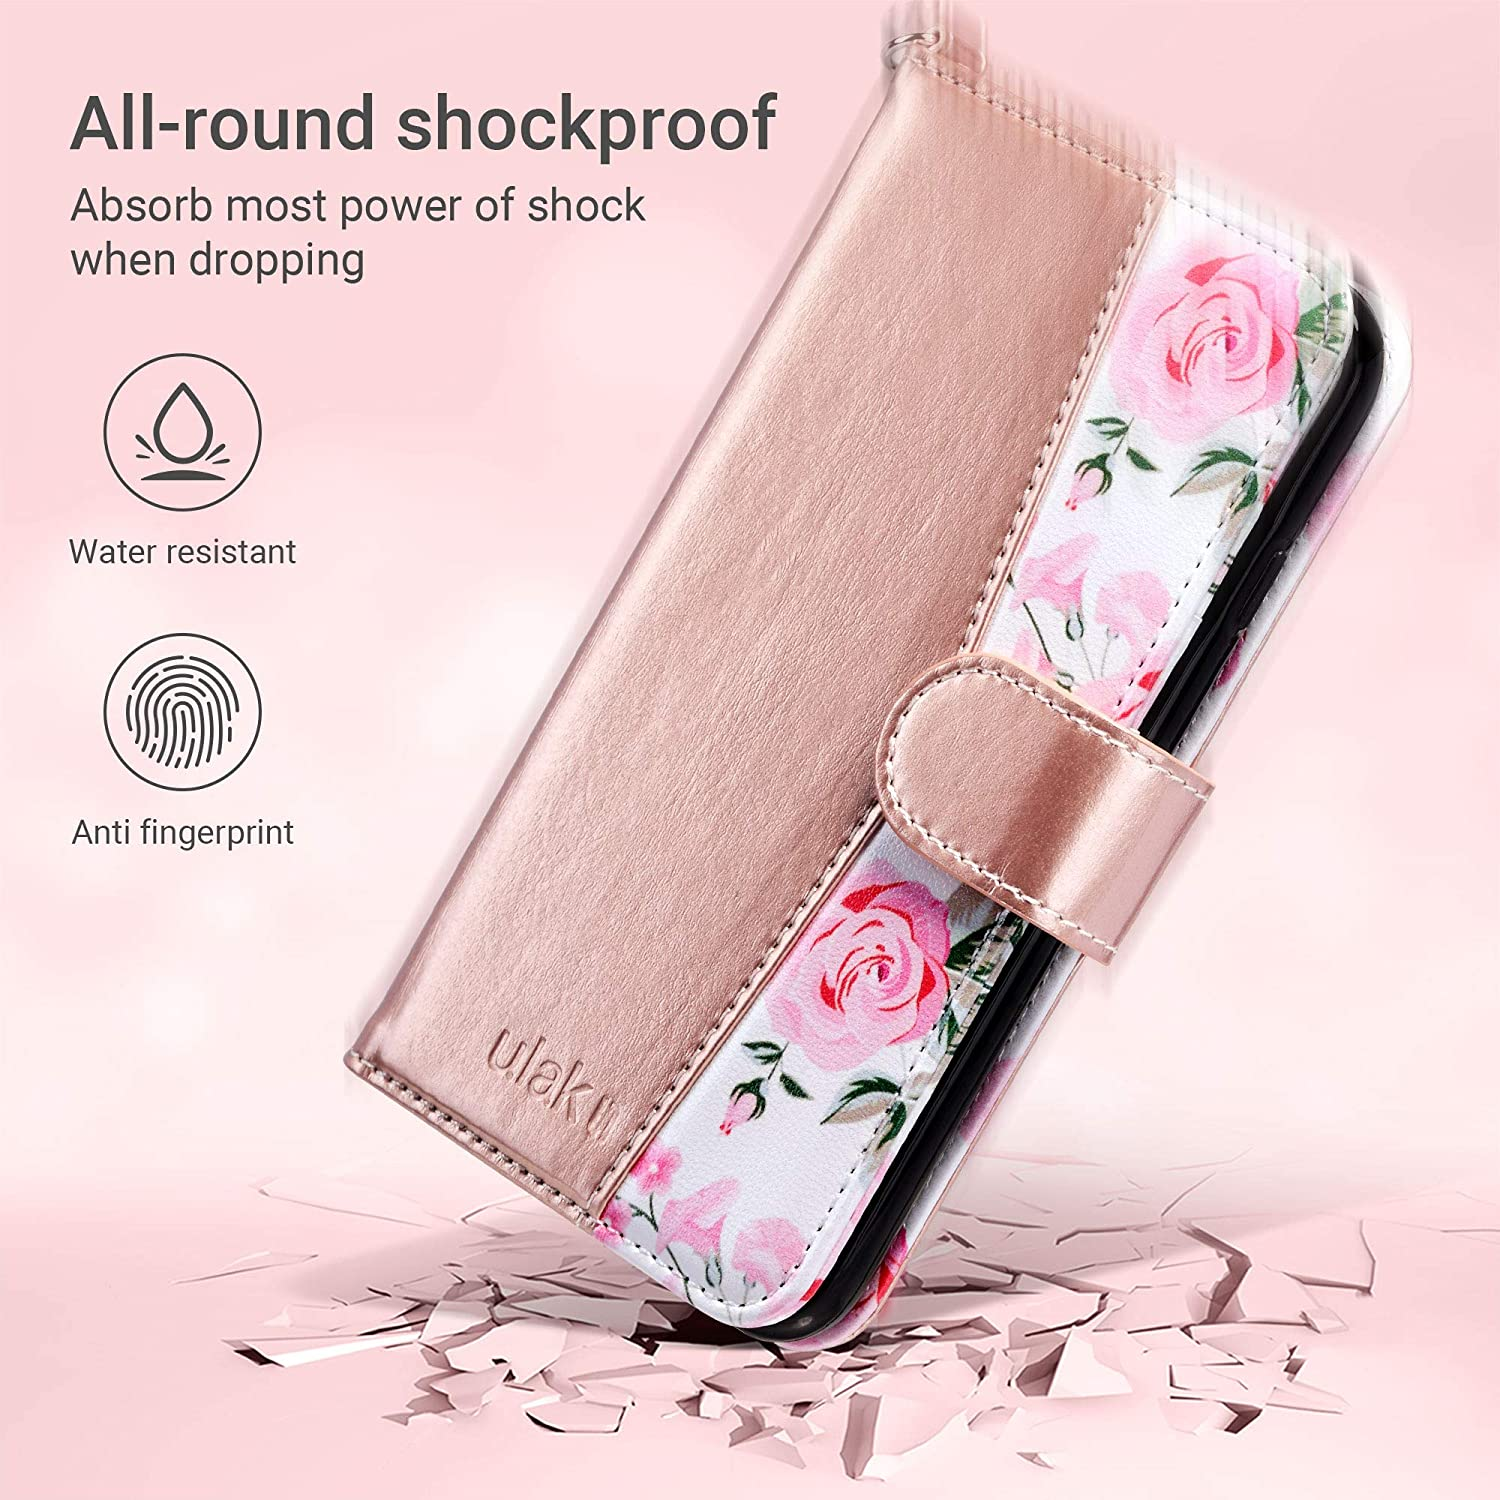 iPhone 6 Wallet Flip PU Leather iPhone 6S Wallet Case with Card Holder Kickstand Designed Wrist Strap Shockproof Protective Cover for iPhone 6//6s 4.7inch,Mandala ULAK iPhone 6s Wallet Case